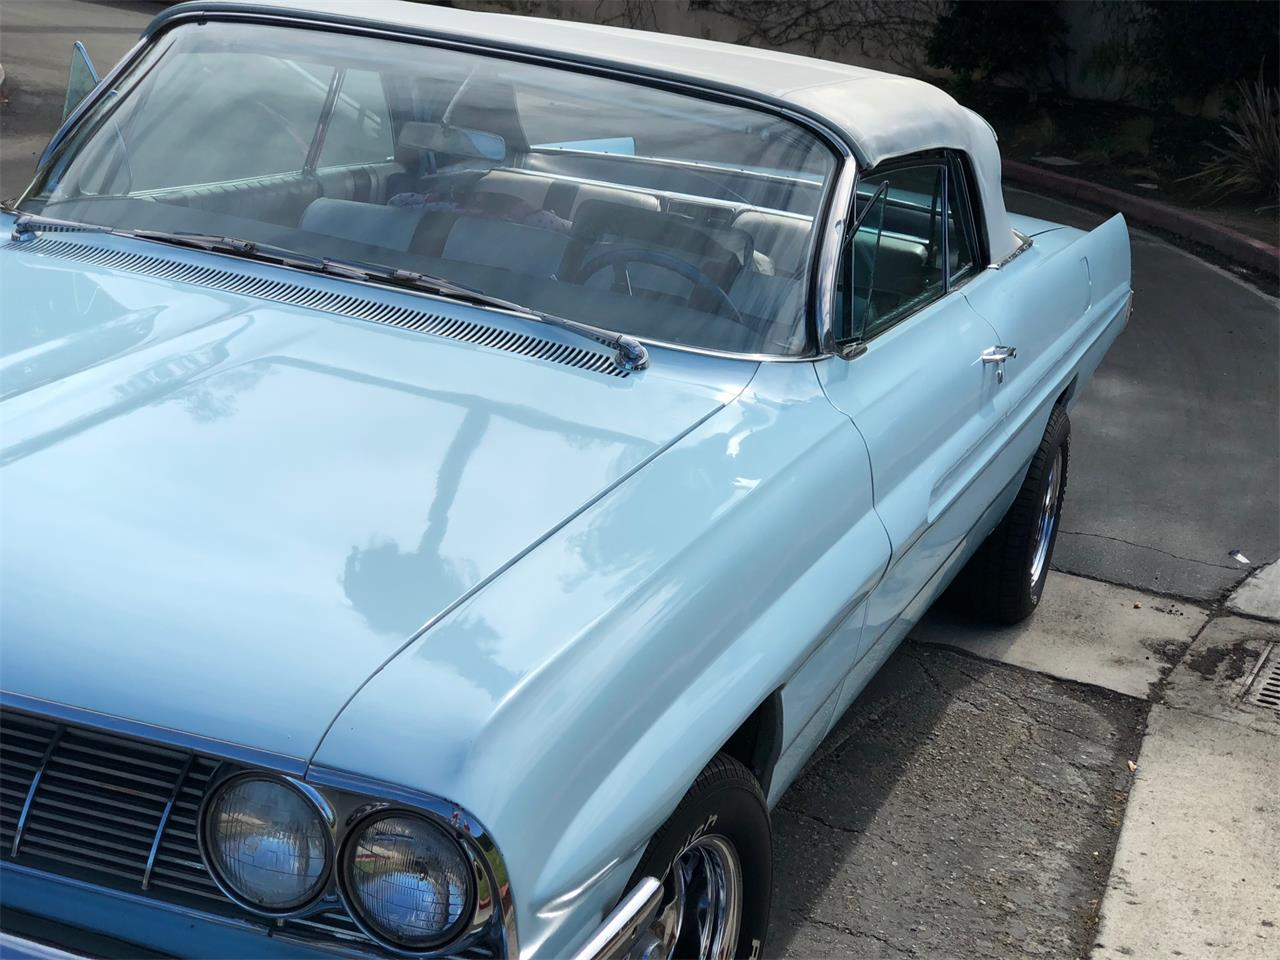 Large Picture of Classic 1961 Pontiac Bonneville - $18,995.00 Offered by a Private Seller - ASQZ